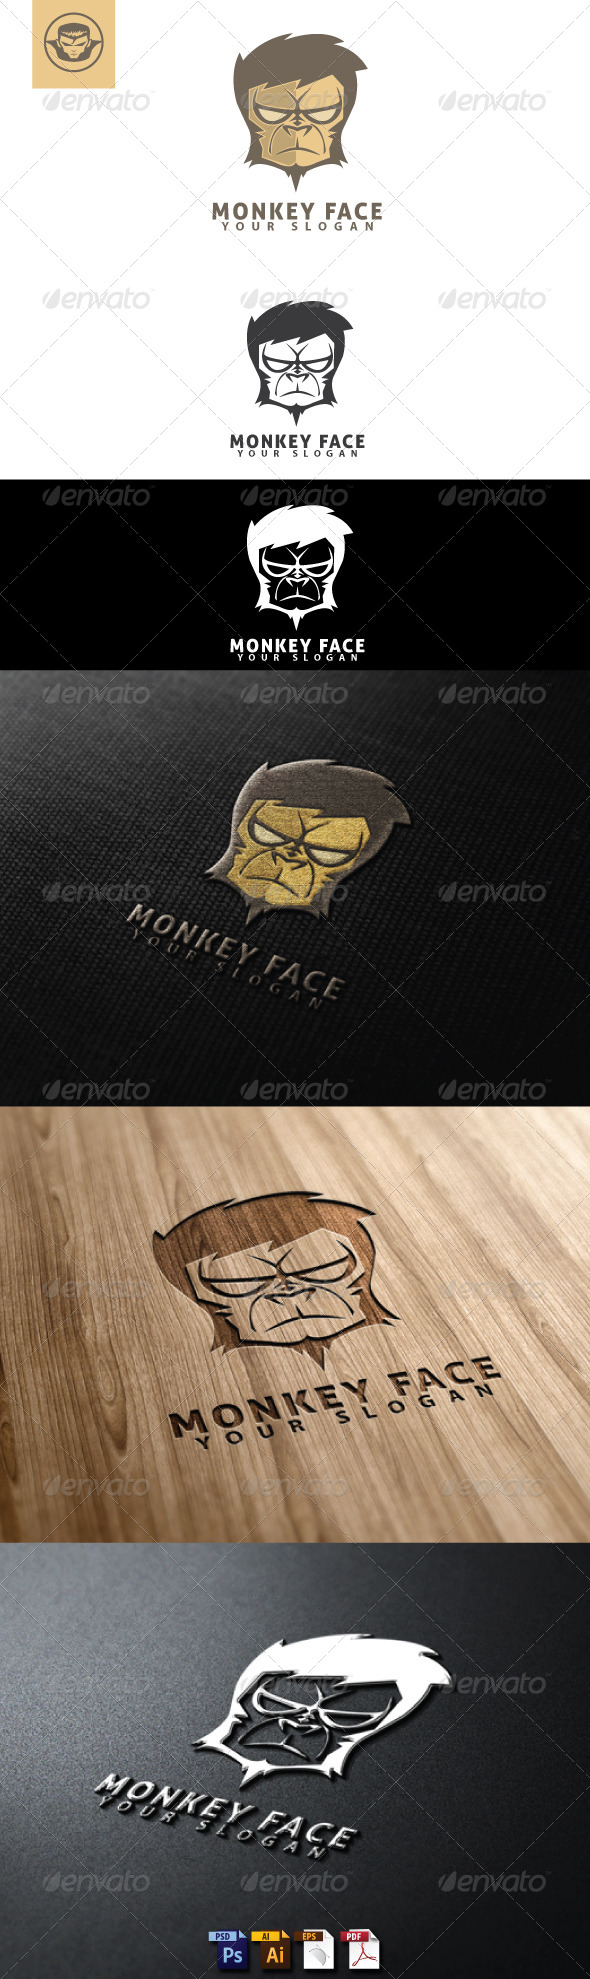 GraphicRiver Monkey Face Logo Template 4786691